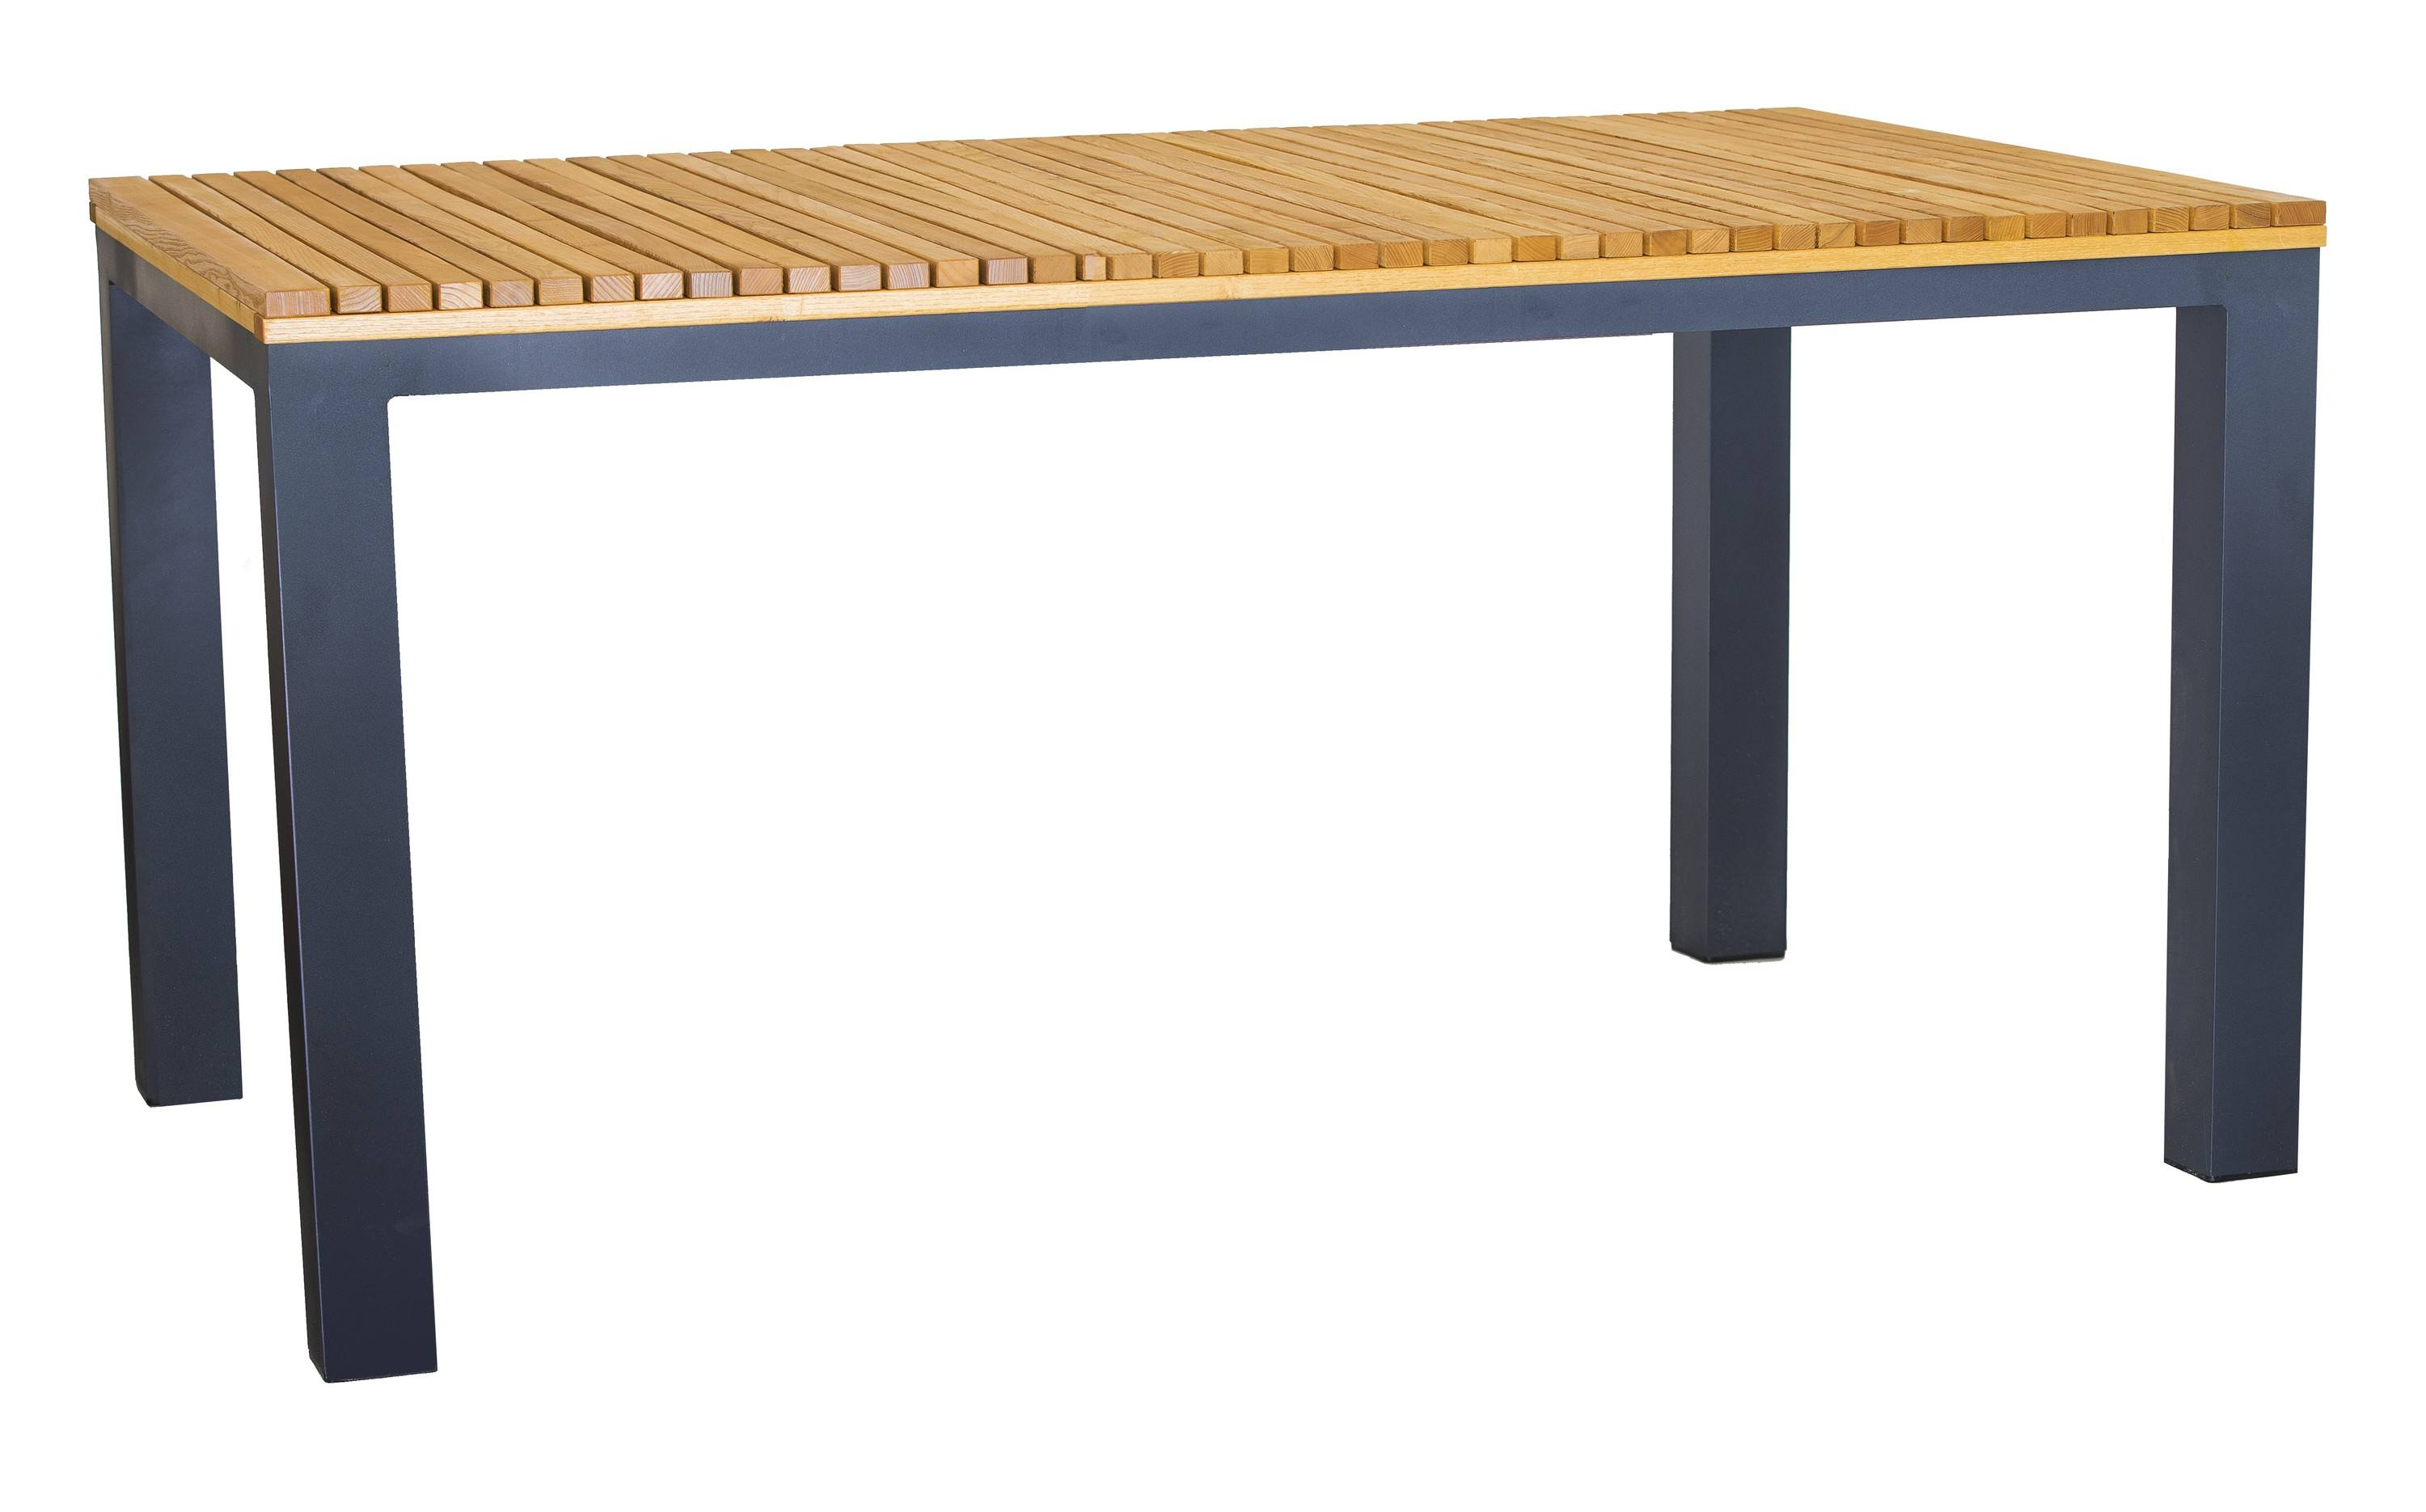 <p>Outdoor Furniture – Metal & Wooden Dining Collection – Moderno Table.</p> <p> </p> <p>Moderno Furniture table with hardwood tabletop with symmetrically shaped frame.</p> <p> </p> <p>Ideally suited for either indoor or outdoor relaxed dining location in pubs or restaurants or more intimate café bistro al fresco area</p>